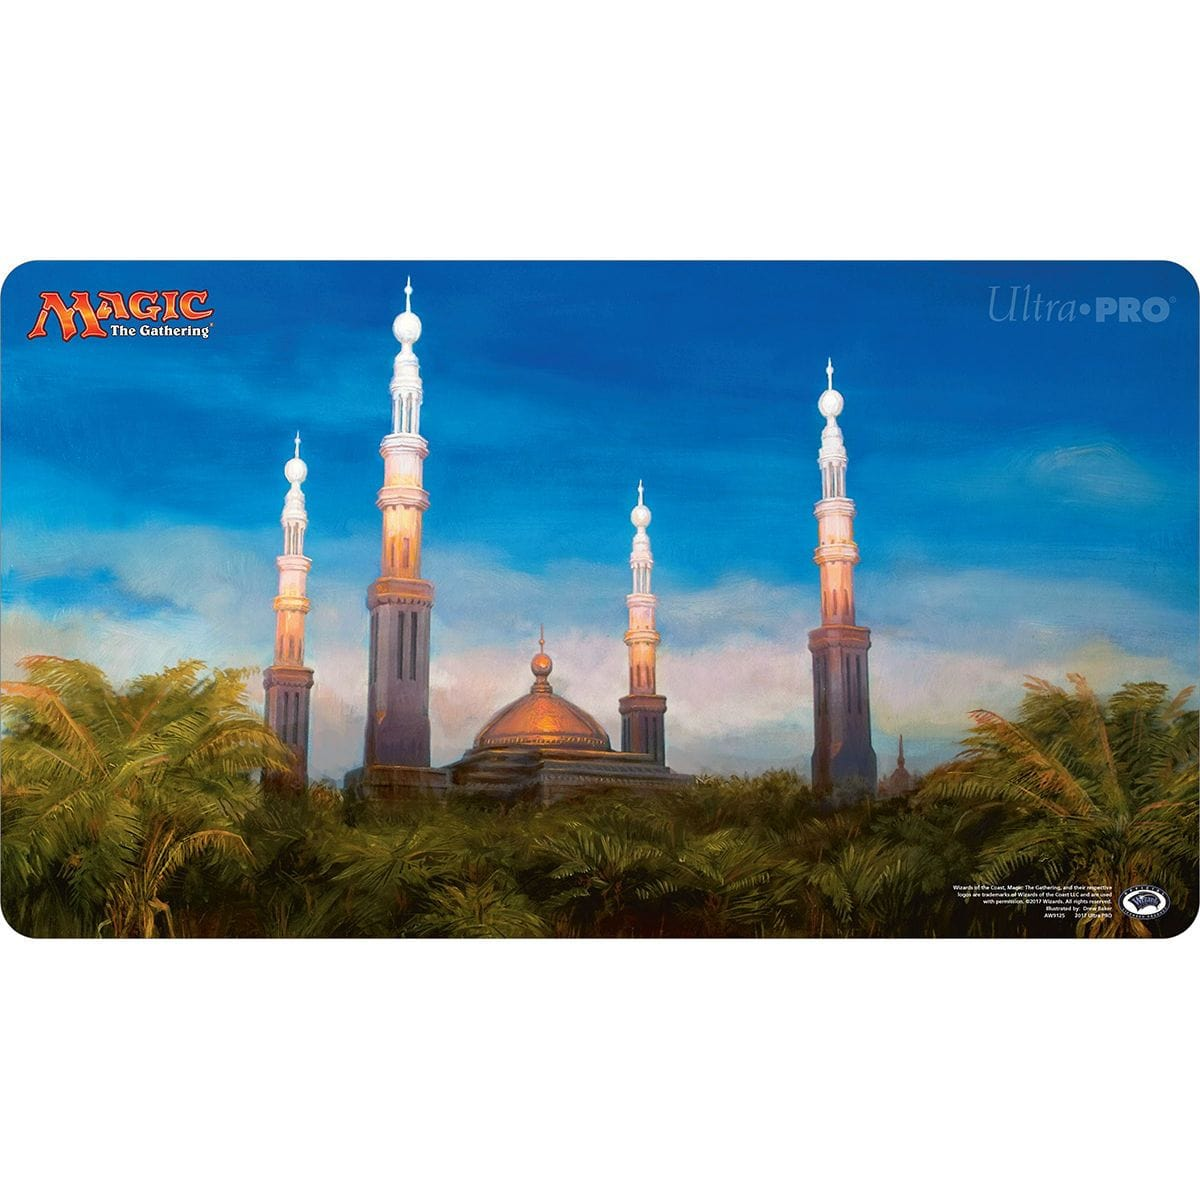 Karakas Playmat - Playmat - Original Magic Art - Accessories for Magic the Gathering and other card games